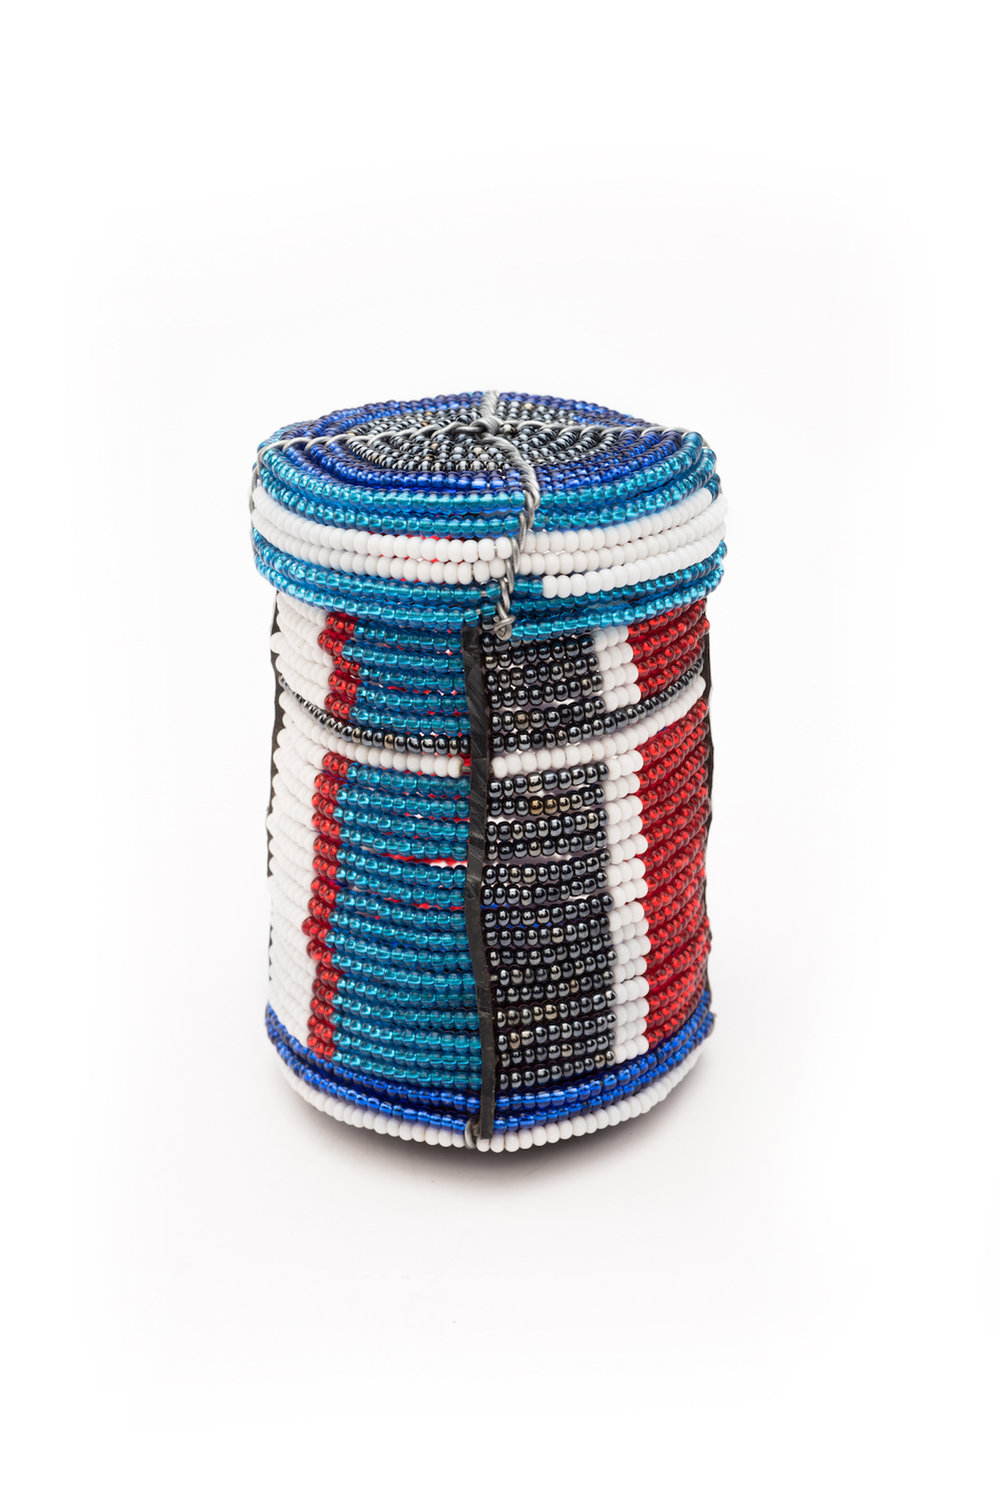 Beaded Box Tall (VGF-Cont)-BW5101.jpg